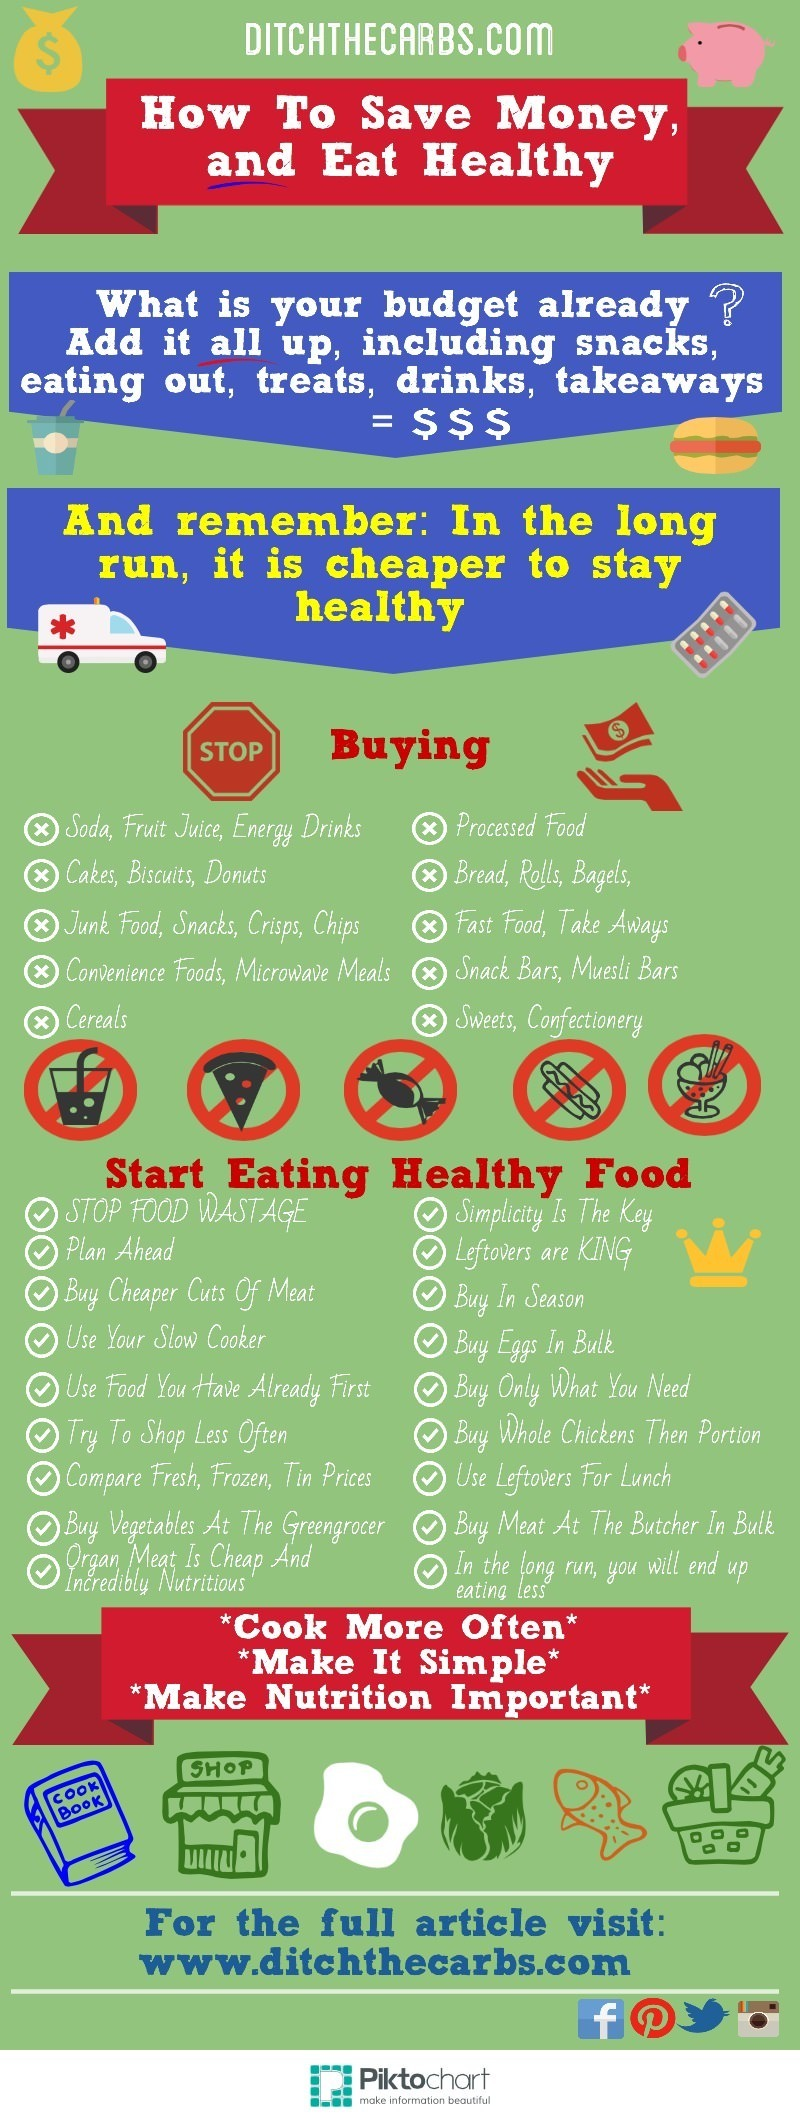 How To Eat Healthy And Save Money